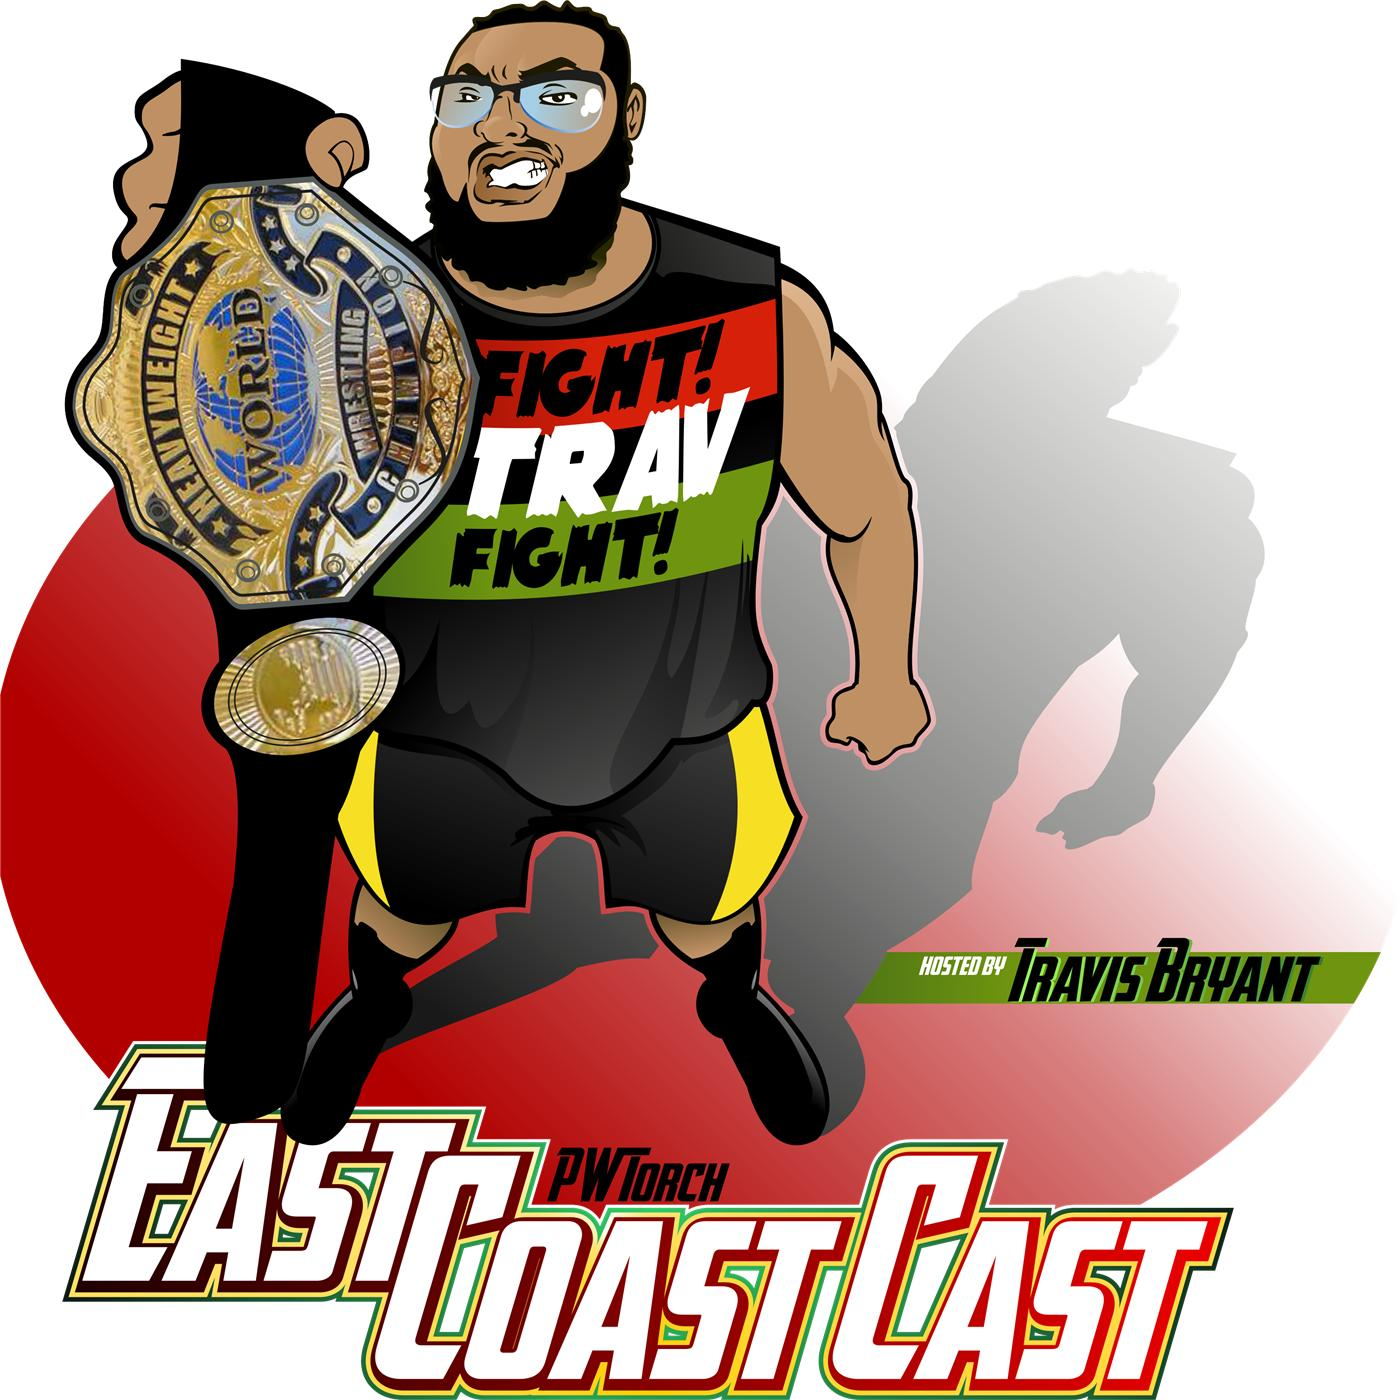 PW Torch East Coast Cast